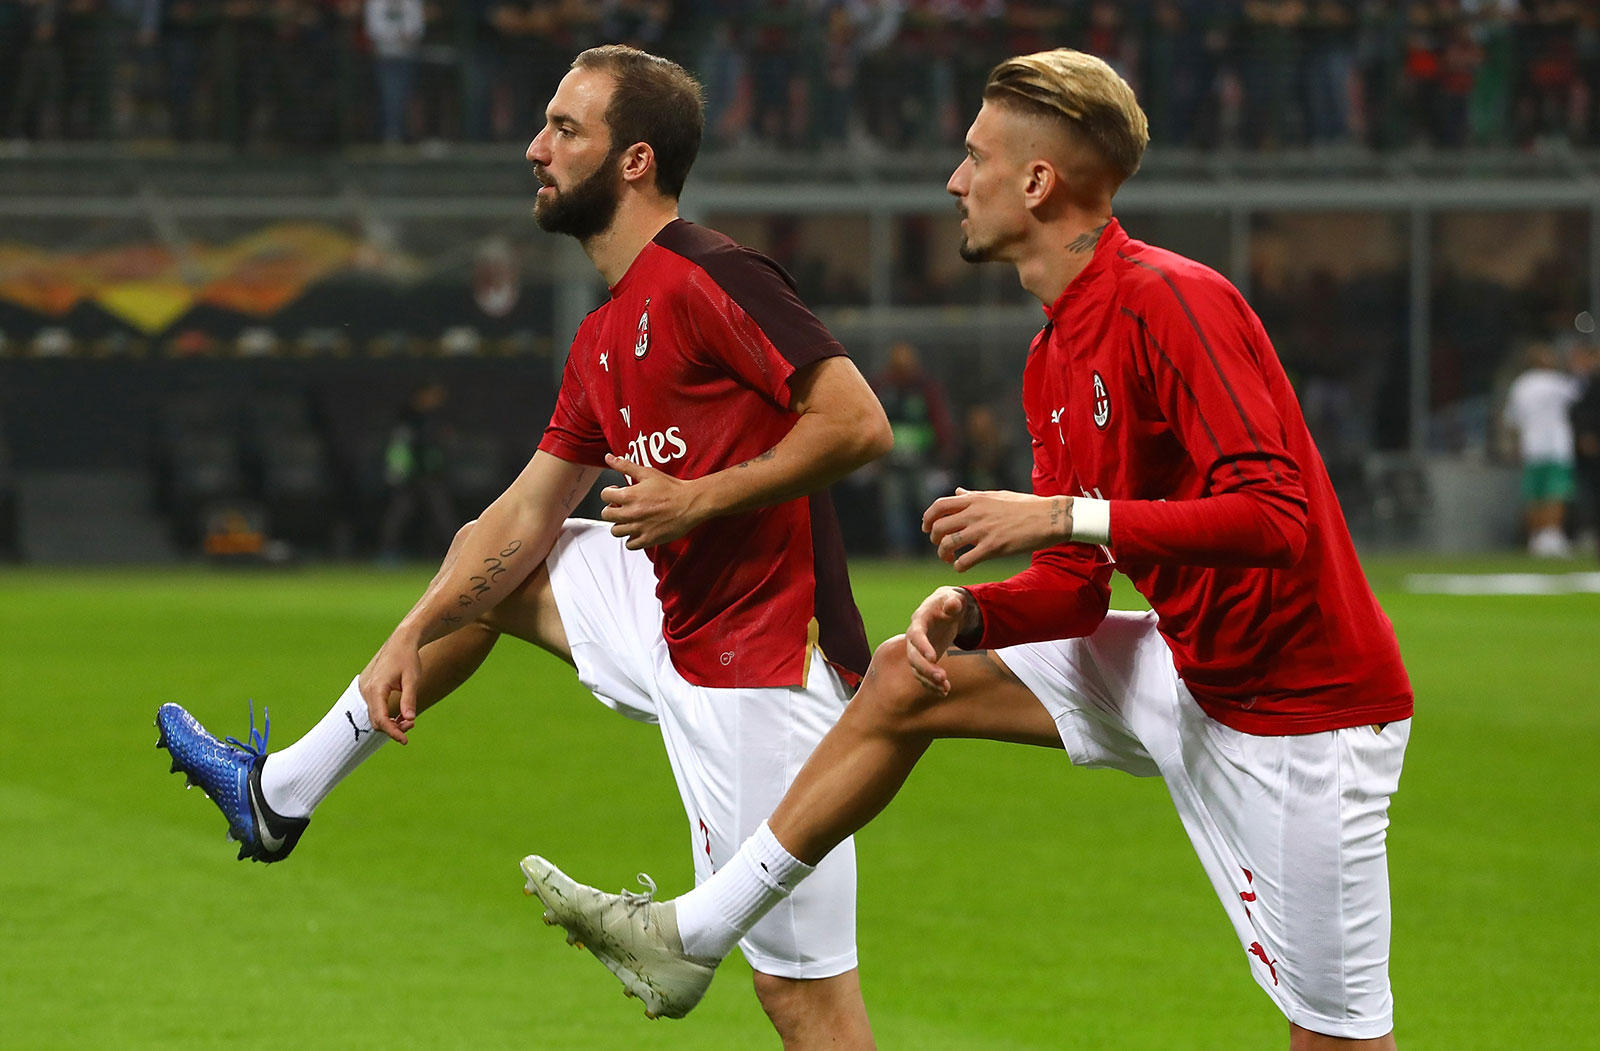 Gonzalo Higuain and Samu Castillejo before Milan-Real Betis at Stadio San Siro on October 25, 2018. (Photo by Marco Luzzani/Getty Images)